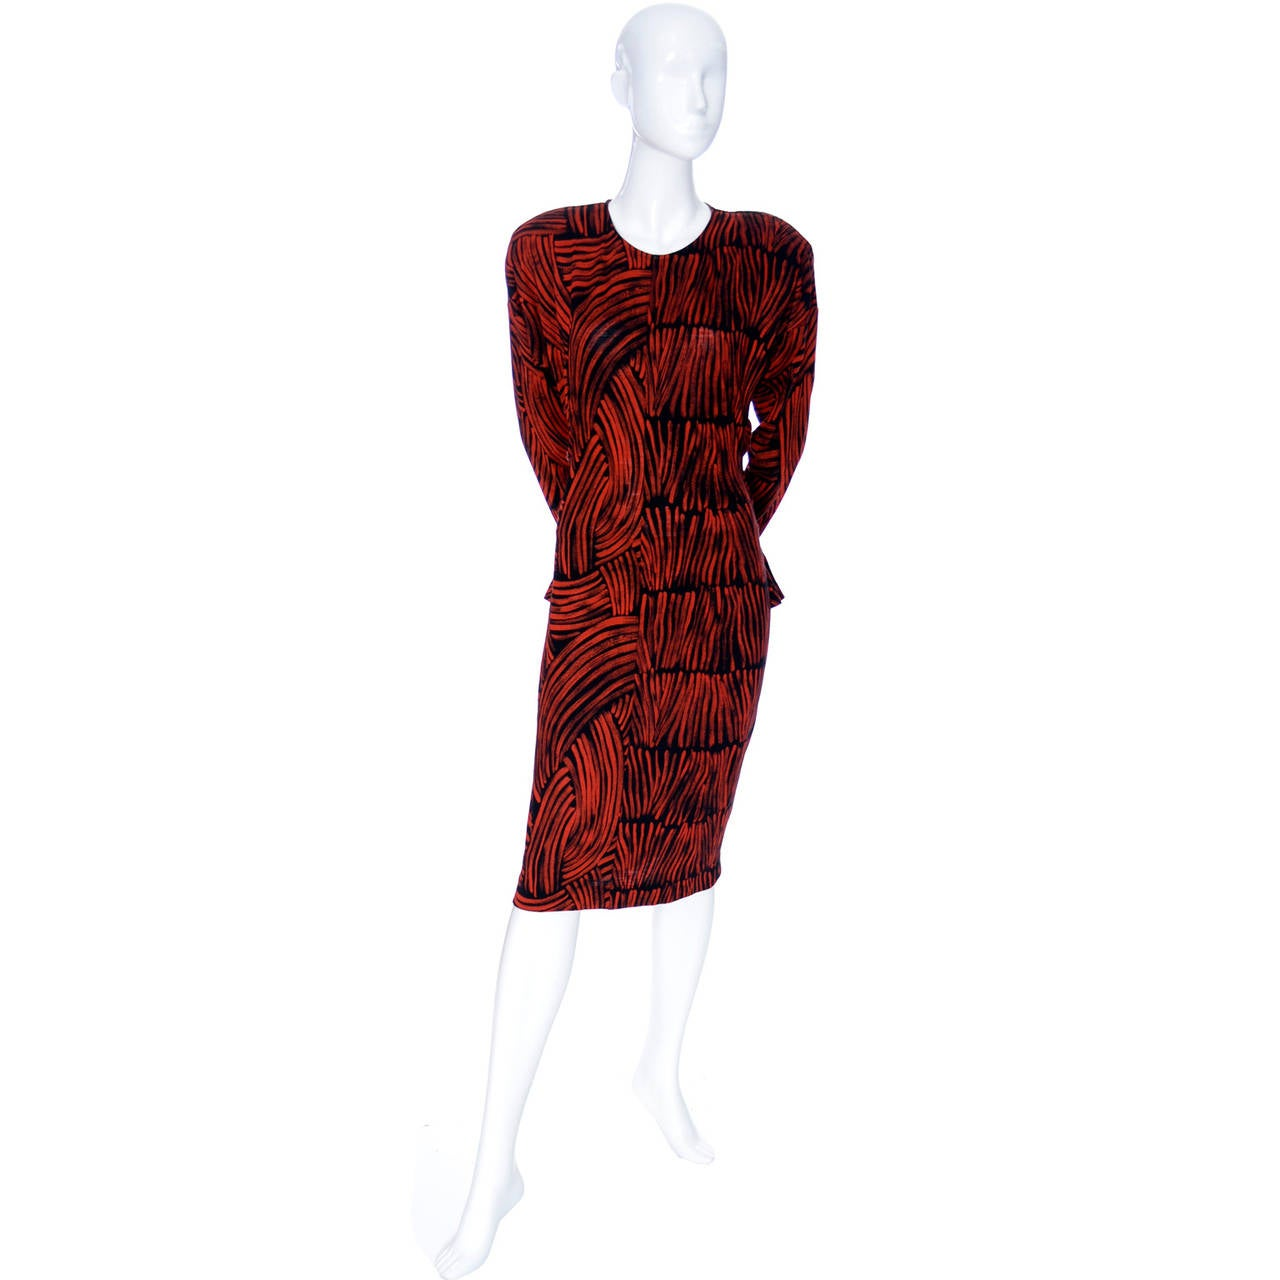 Vintage Missoni Dress I Magnin Abstract Red Black Print Peplum Italy In Excellent Condition For Sale In Portland, OR